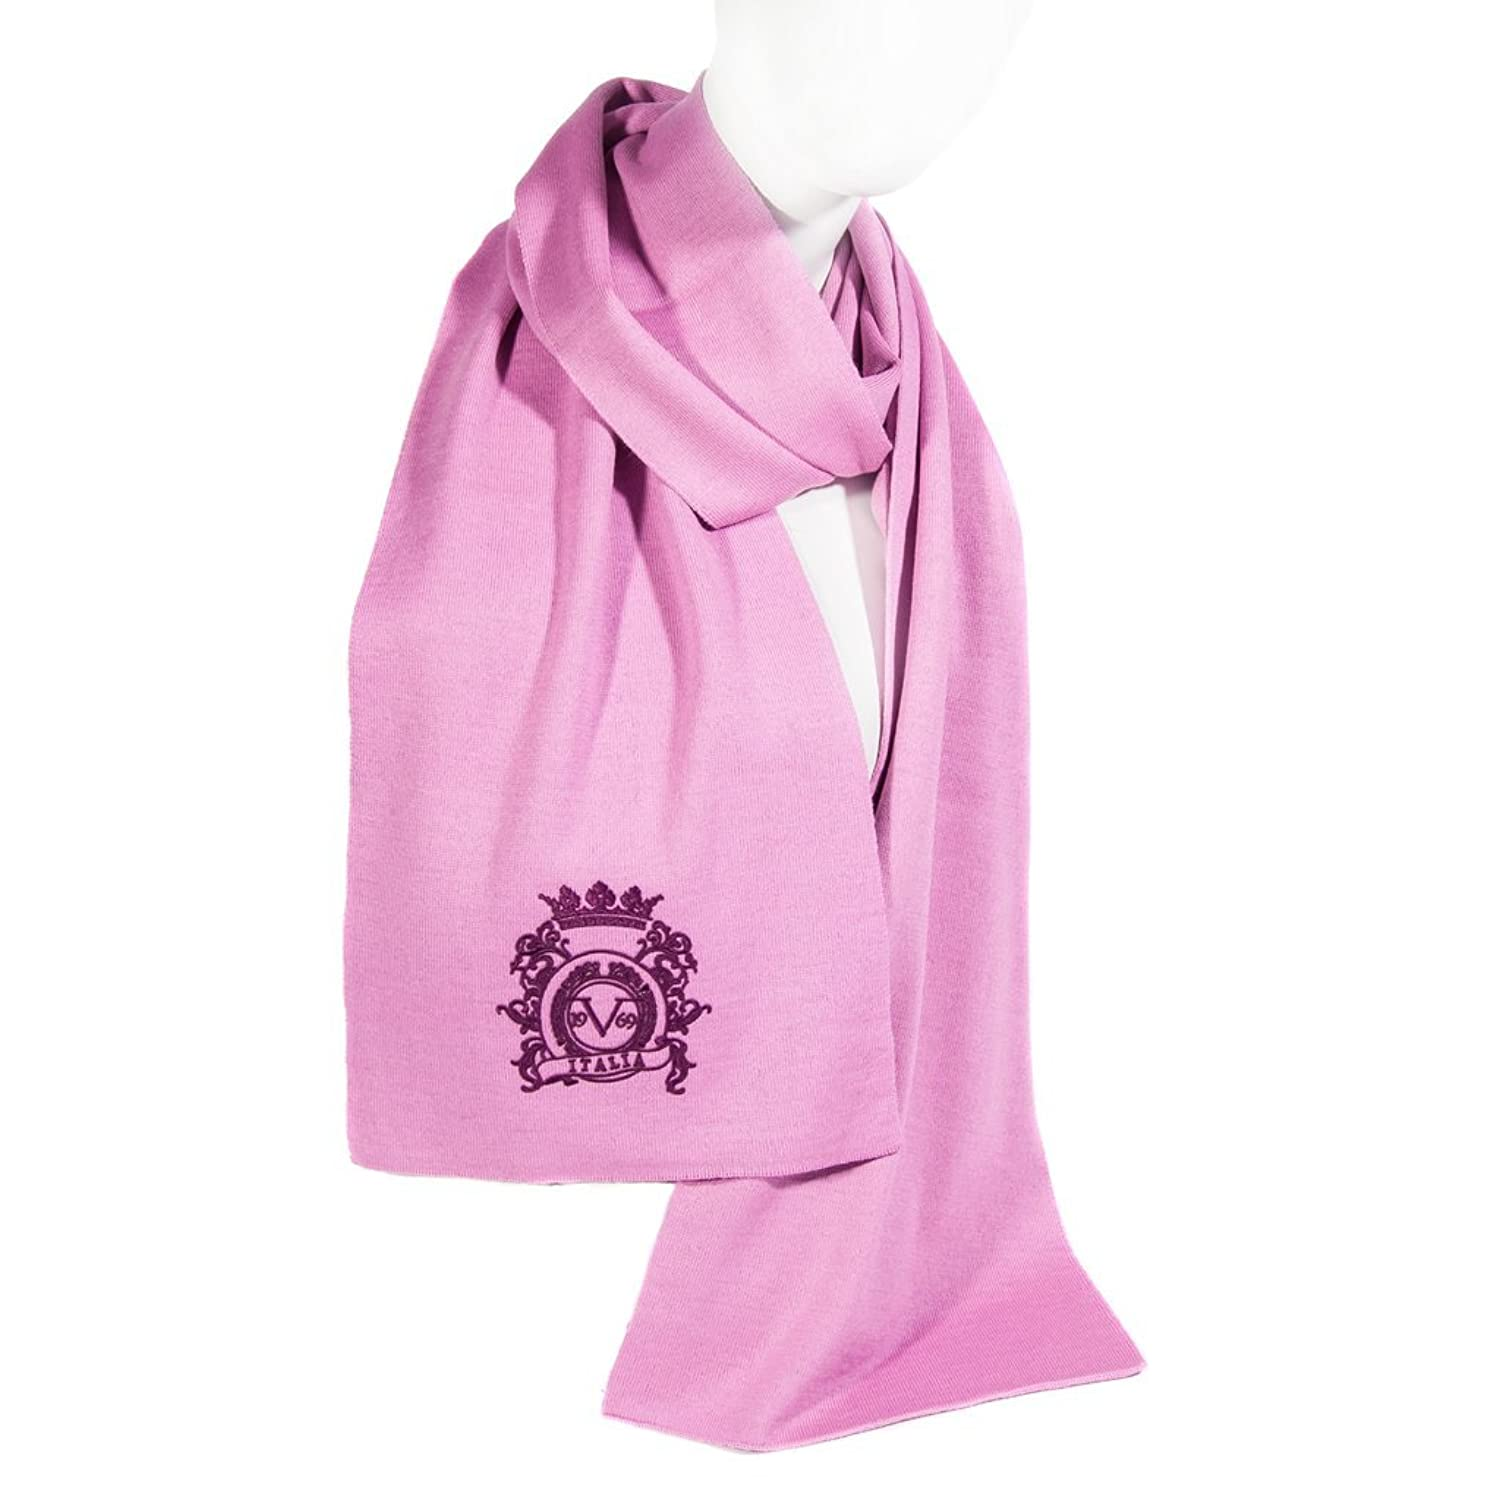 Versace Woman Pink Scarf With Logo